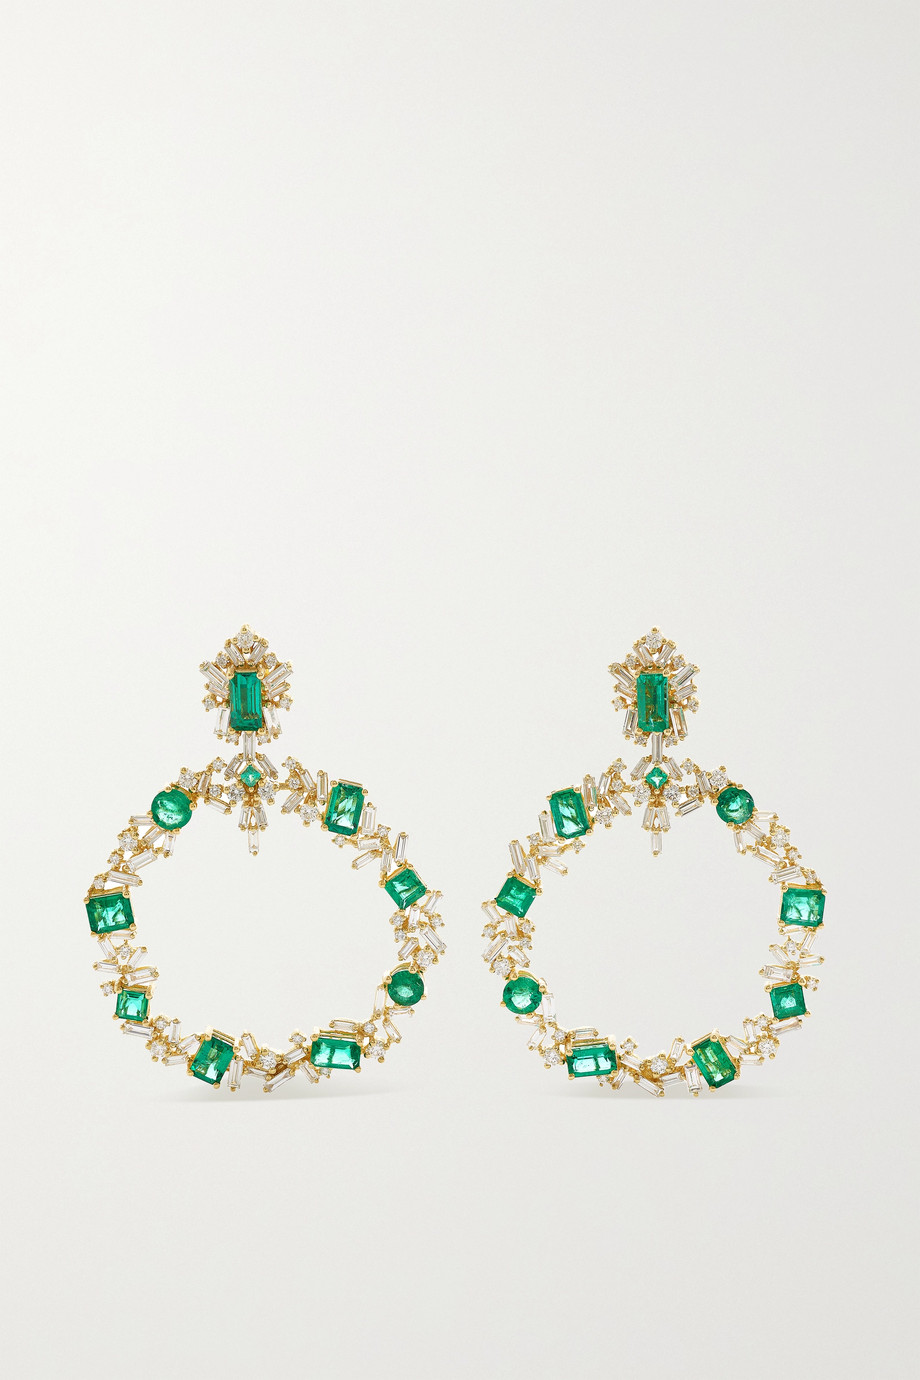 SUZANNE KALAN 18-karat gold, emerald and diamond earrings